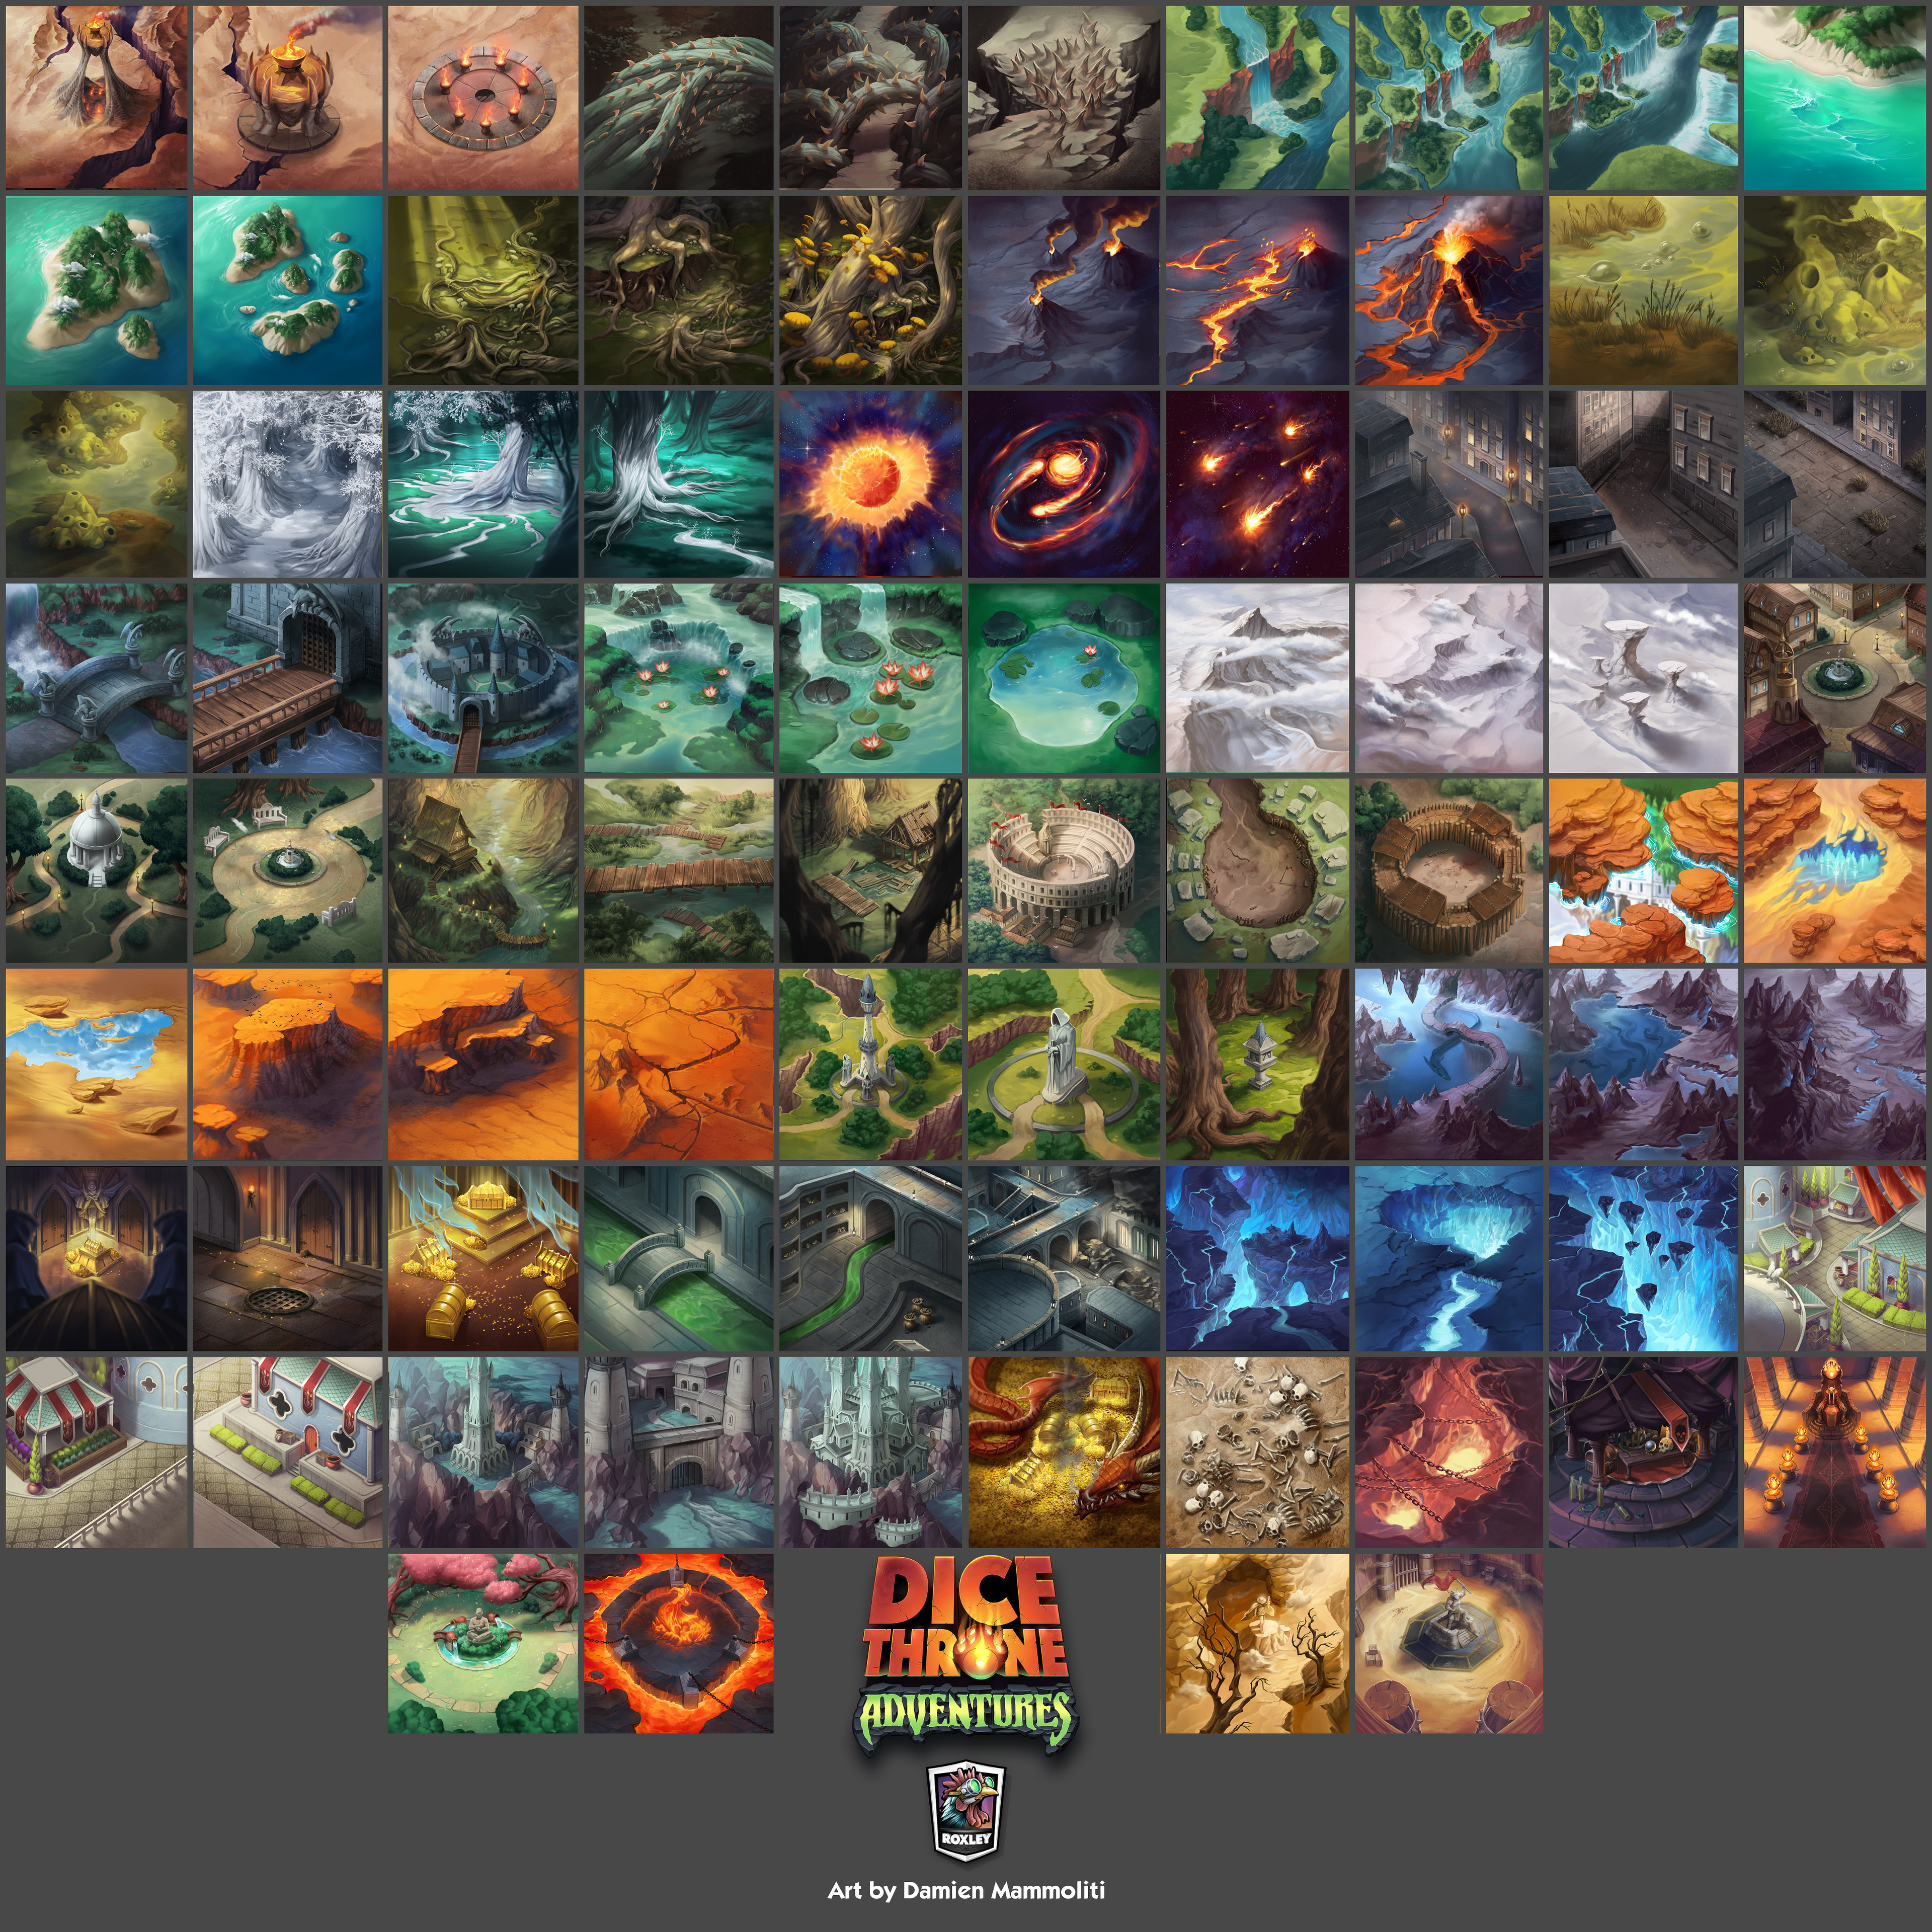 The complete set of map tiles